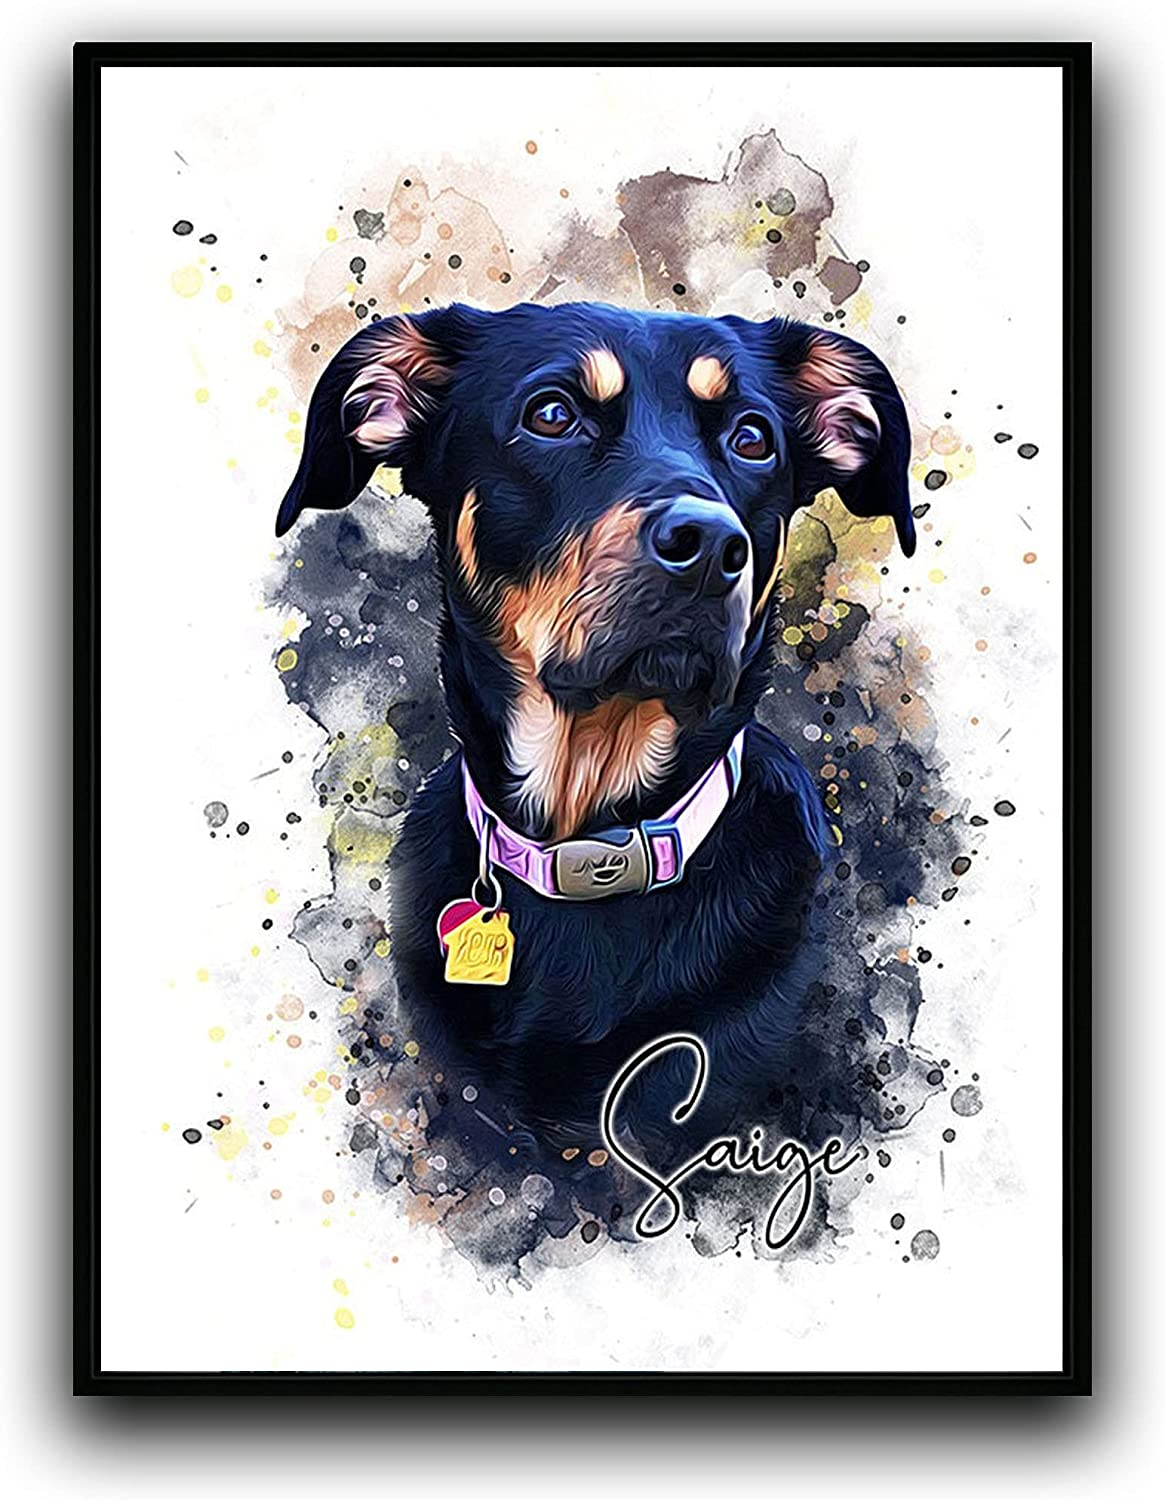 Custom Dog Cat Portrait Watercolor Painting SEAL limited product All items in the store Prints Framed Canvas